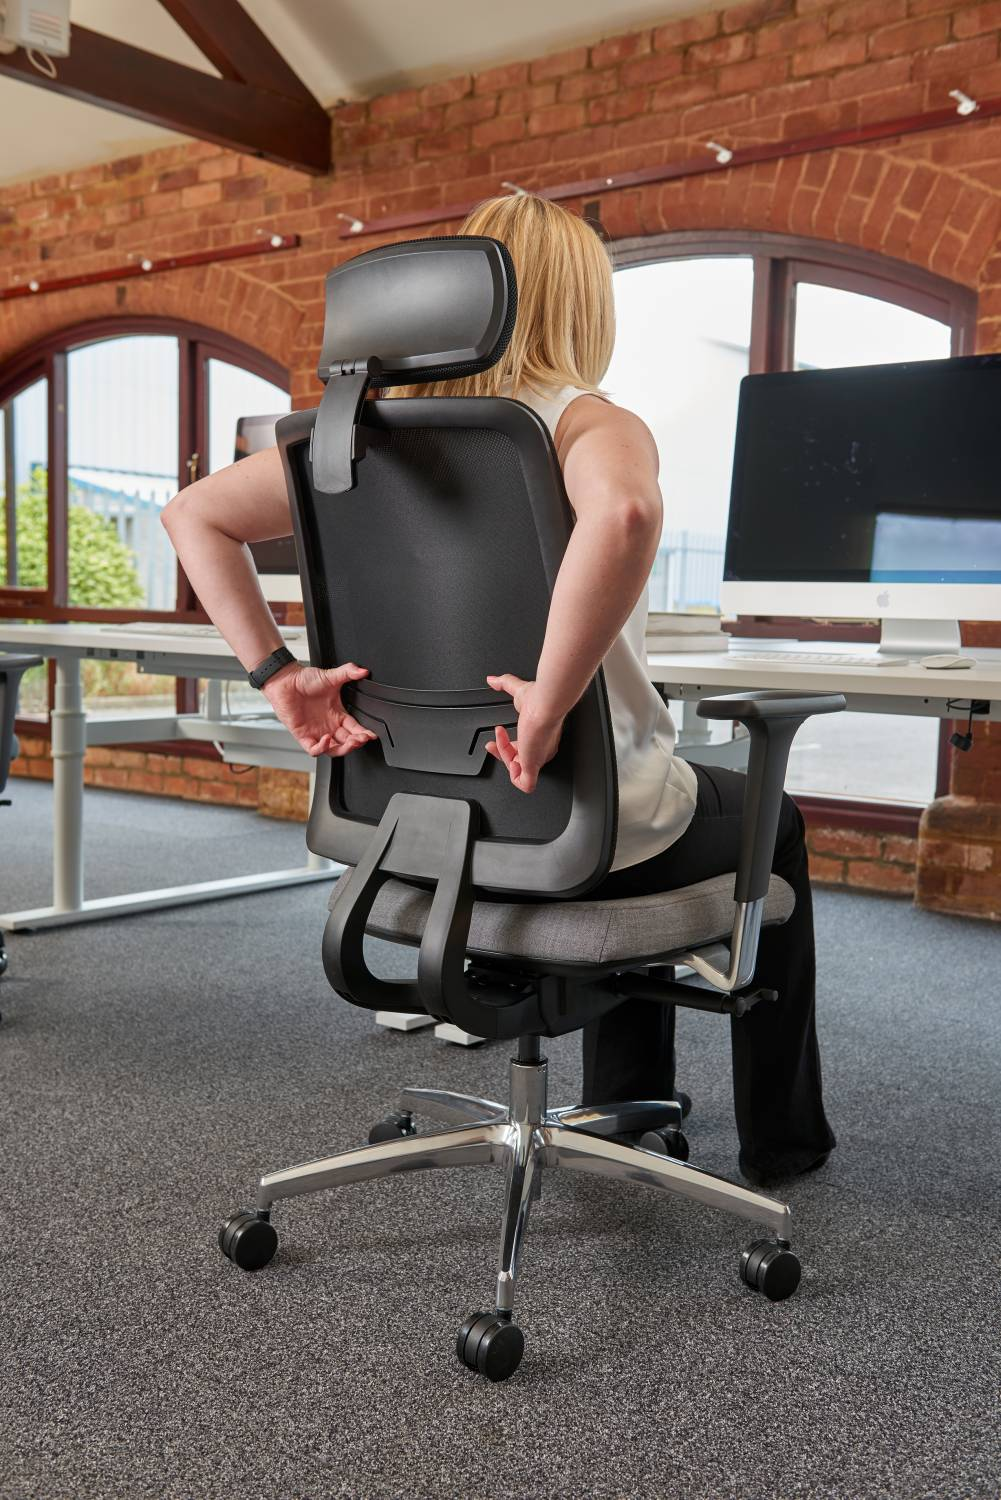 Woman Adjusting Integral Lumbar Support on Chair